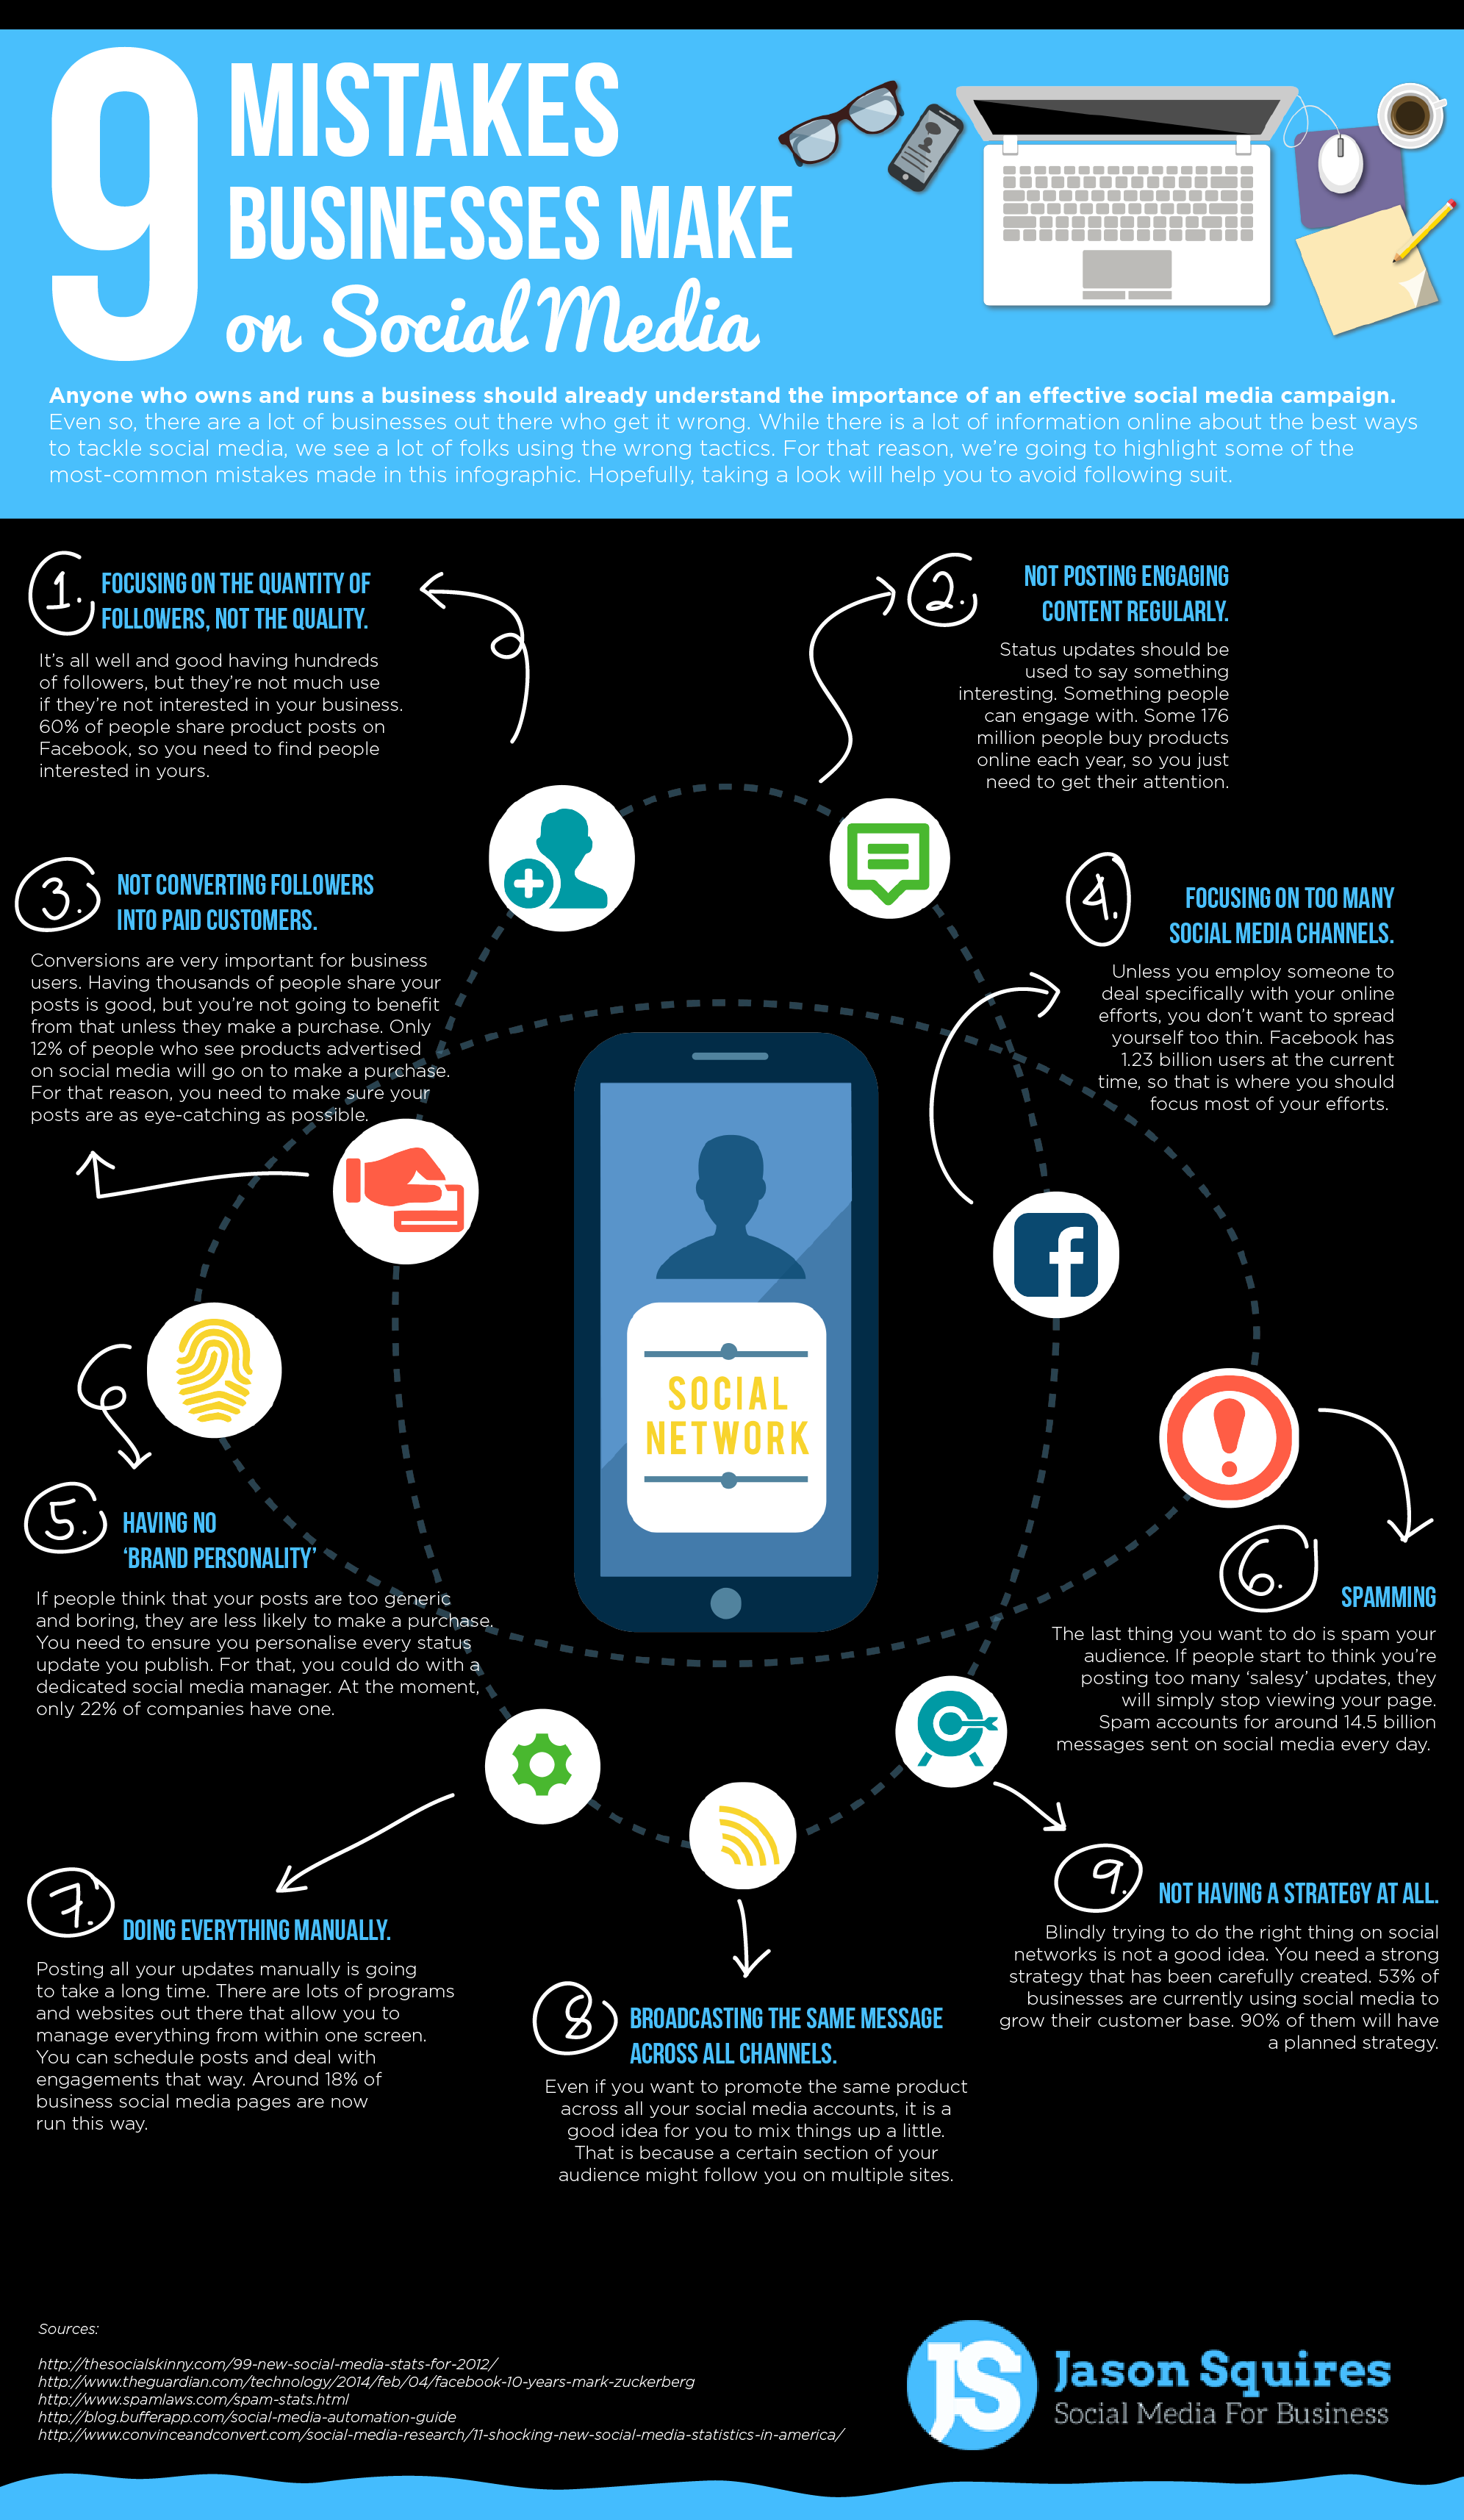 wersm-9-common-social-media-mistakes-infographic